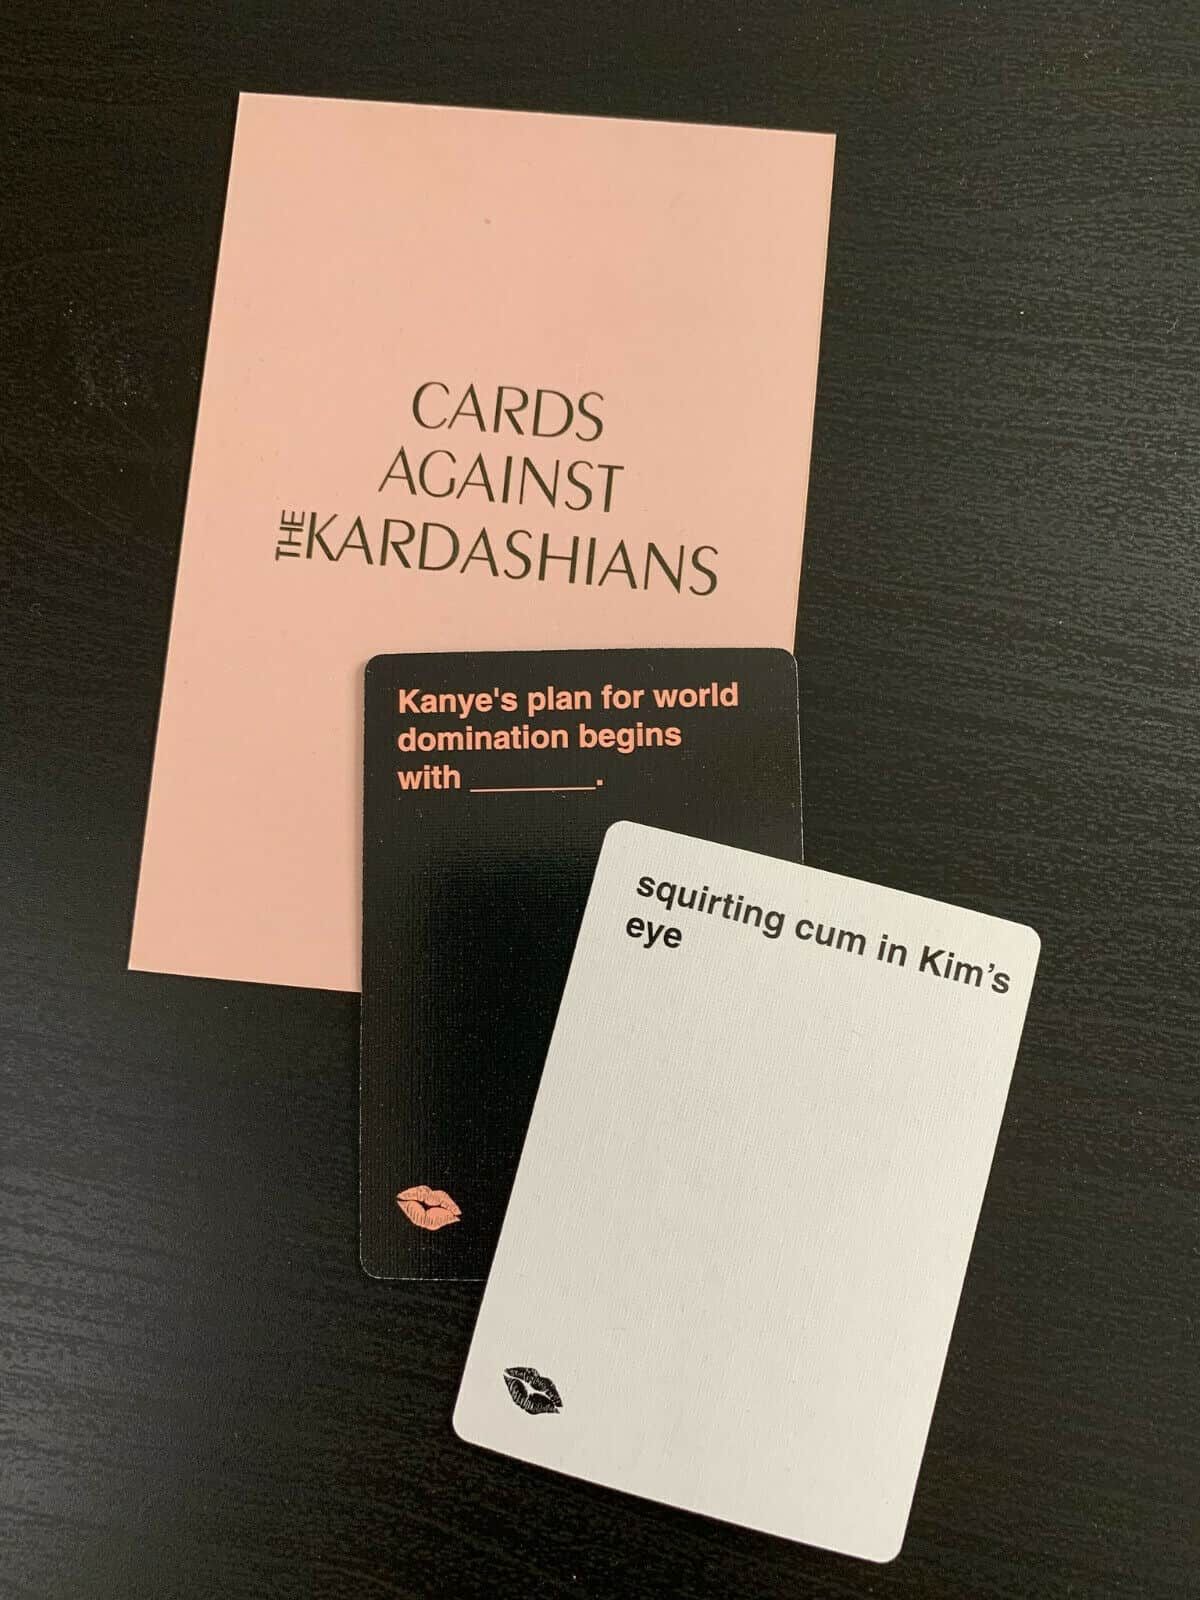 Cards Against Kardashians game play example